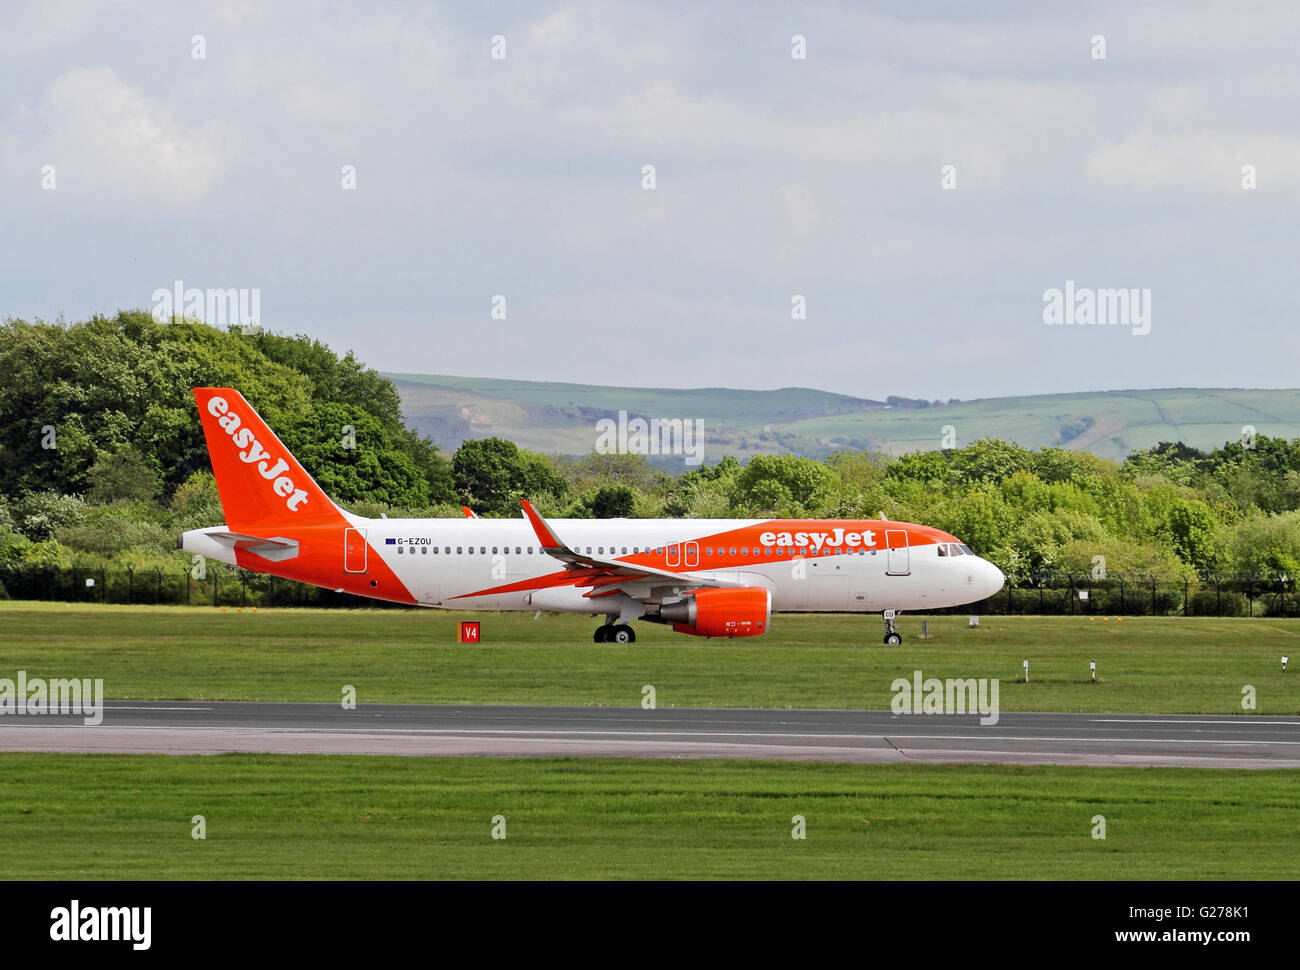 Easyjet Airbus A320-214 airliner taxiing at Manchester International Airport Stock Photo